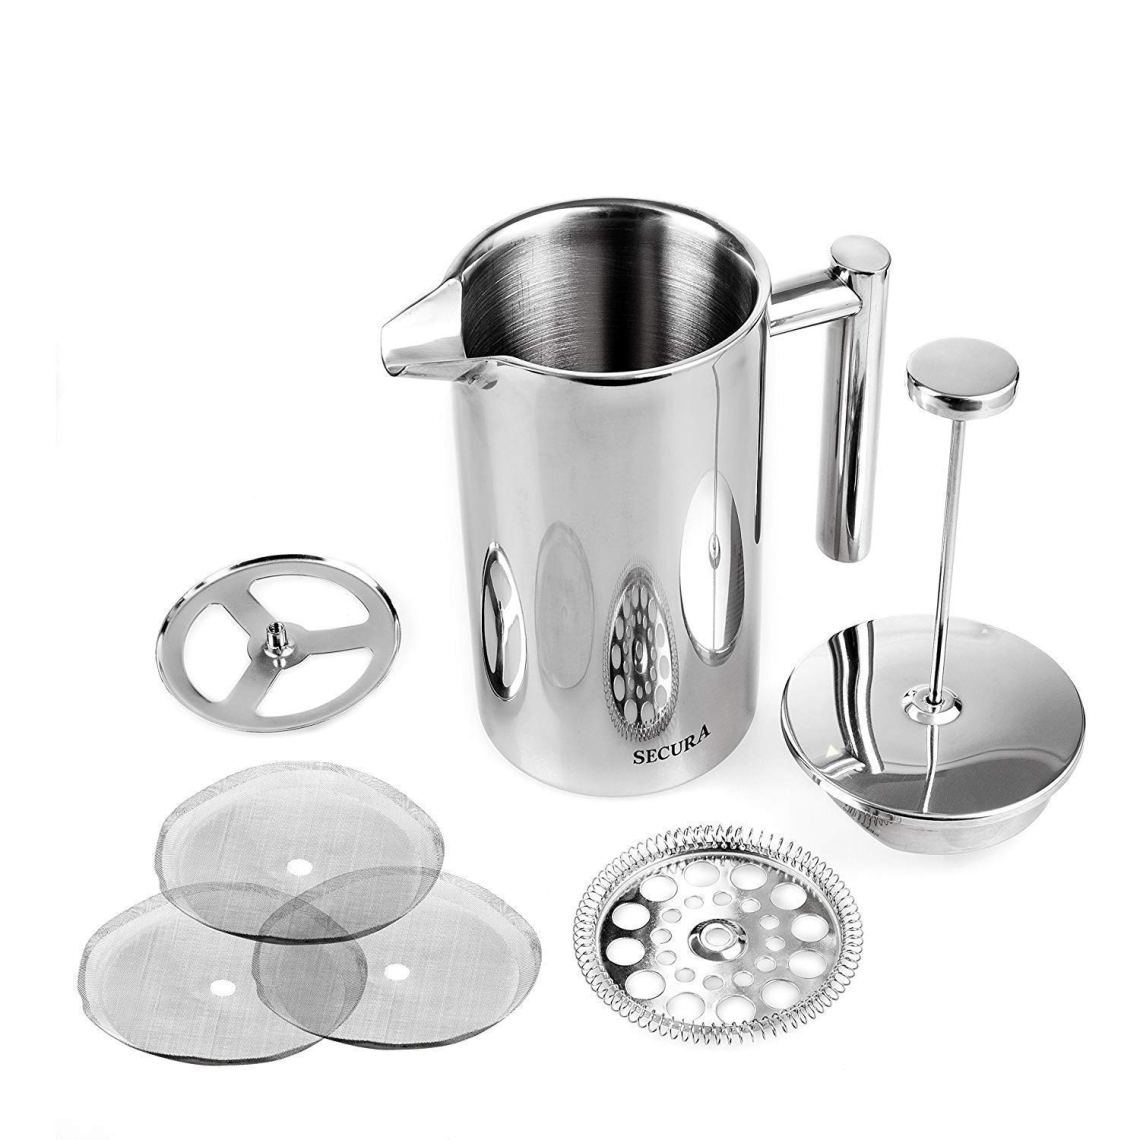 Secura Stainless Steel French Press Coffee Maker info